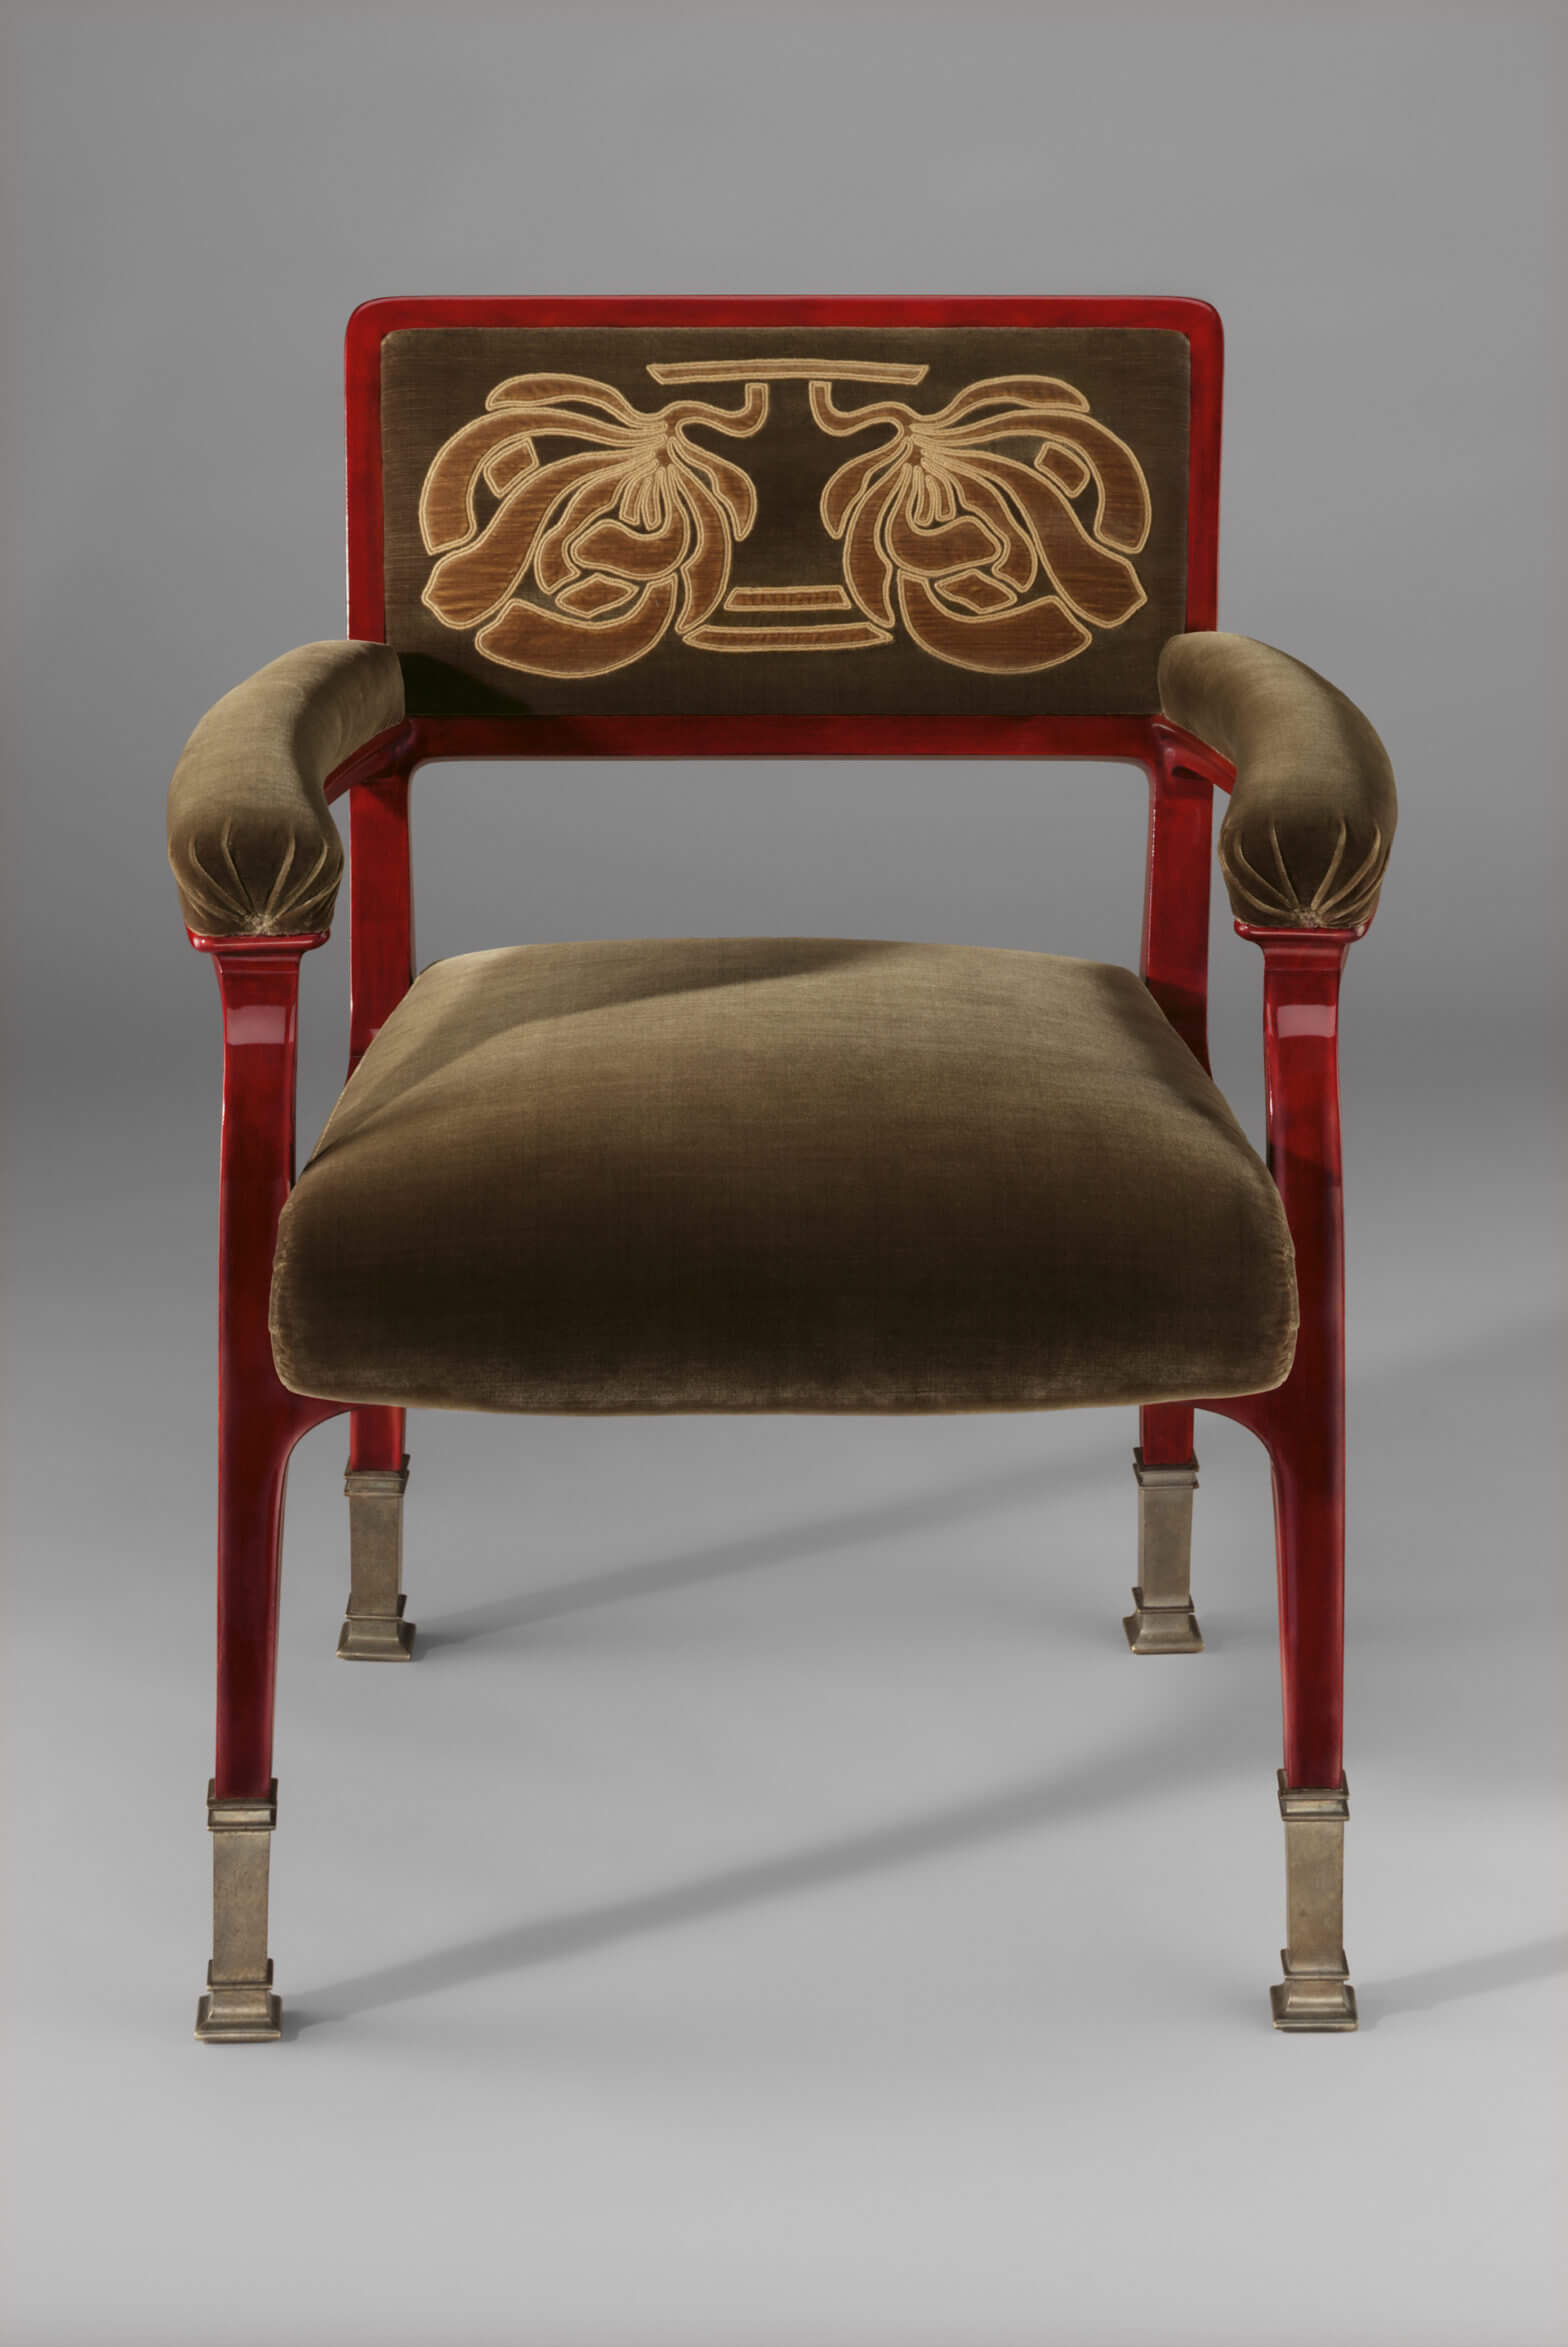 Otto Wagner - Armchair for the Paris World Fair 1900